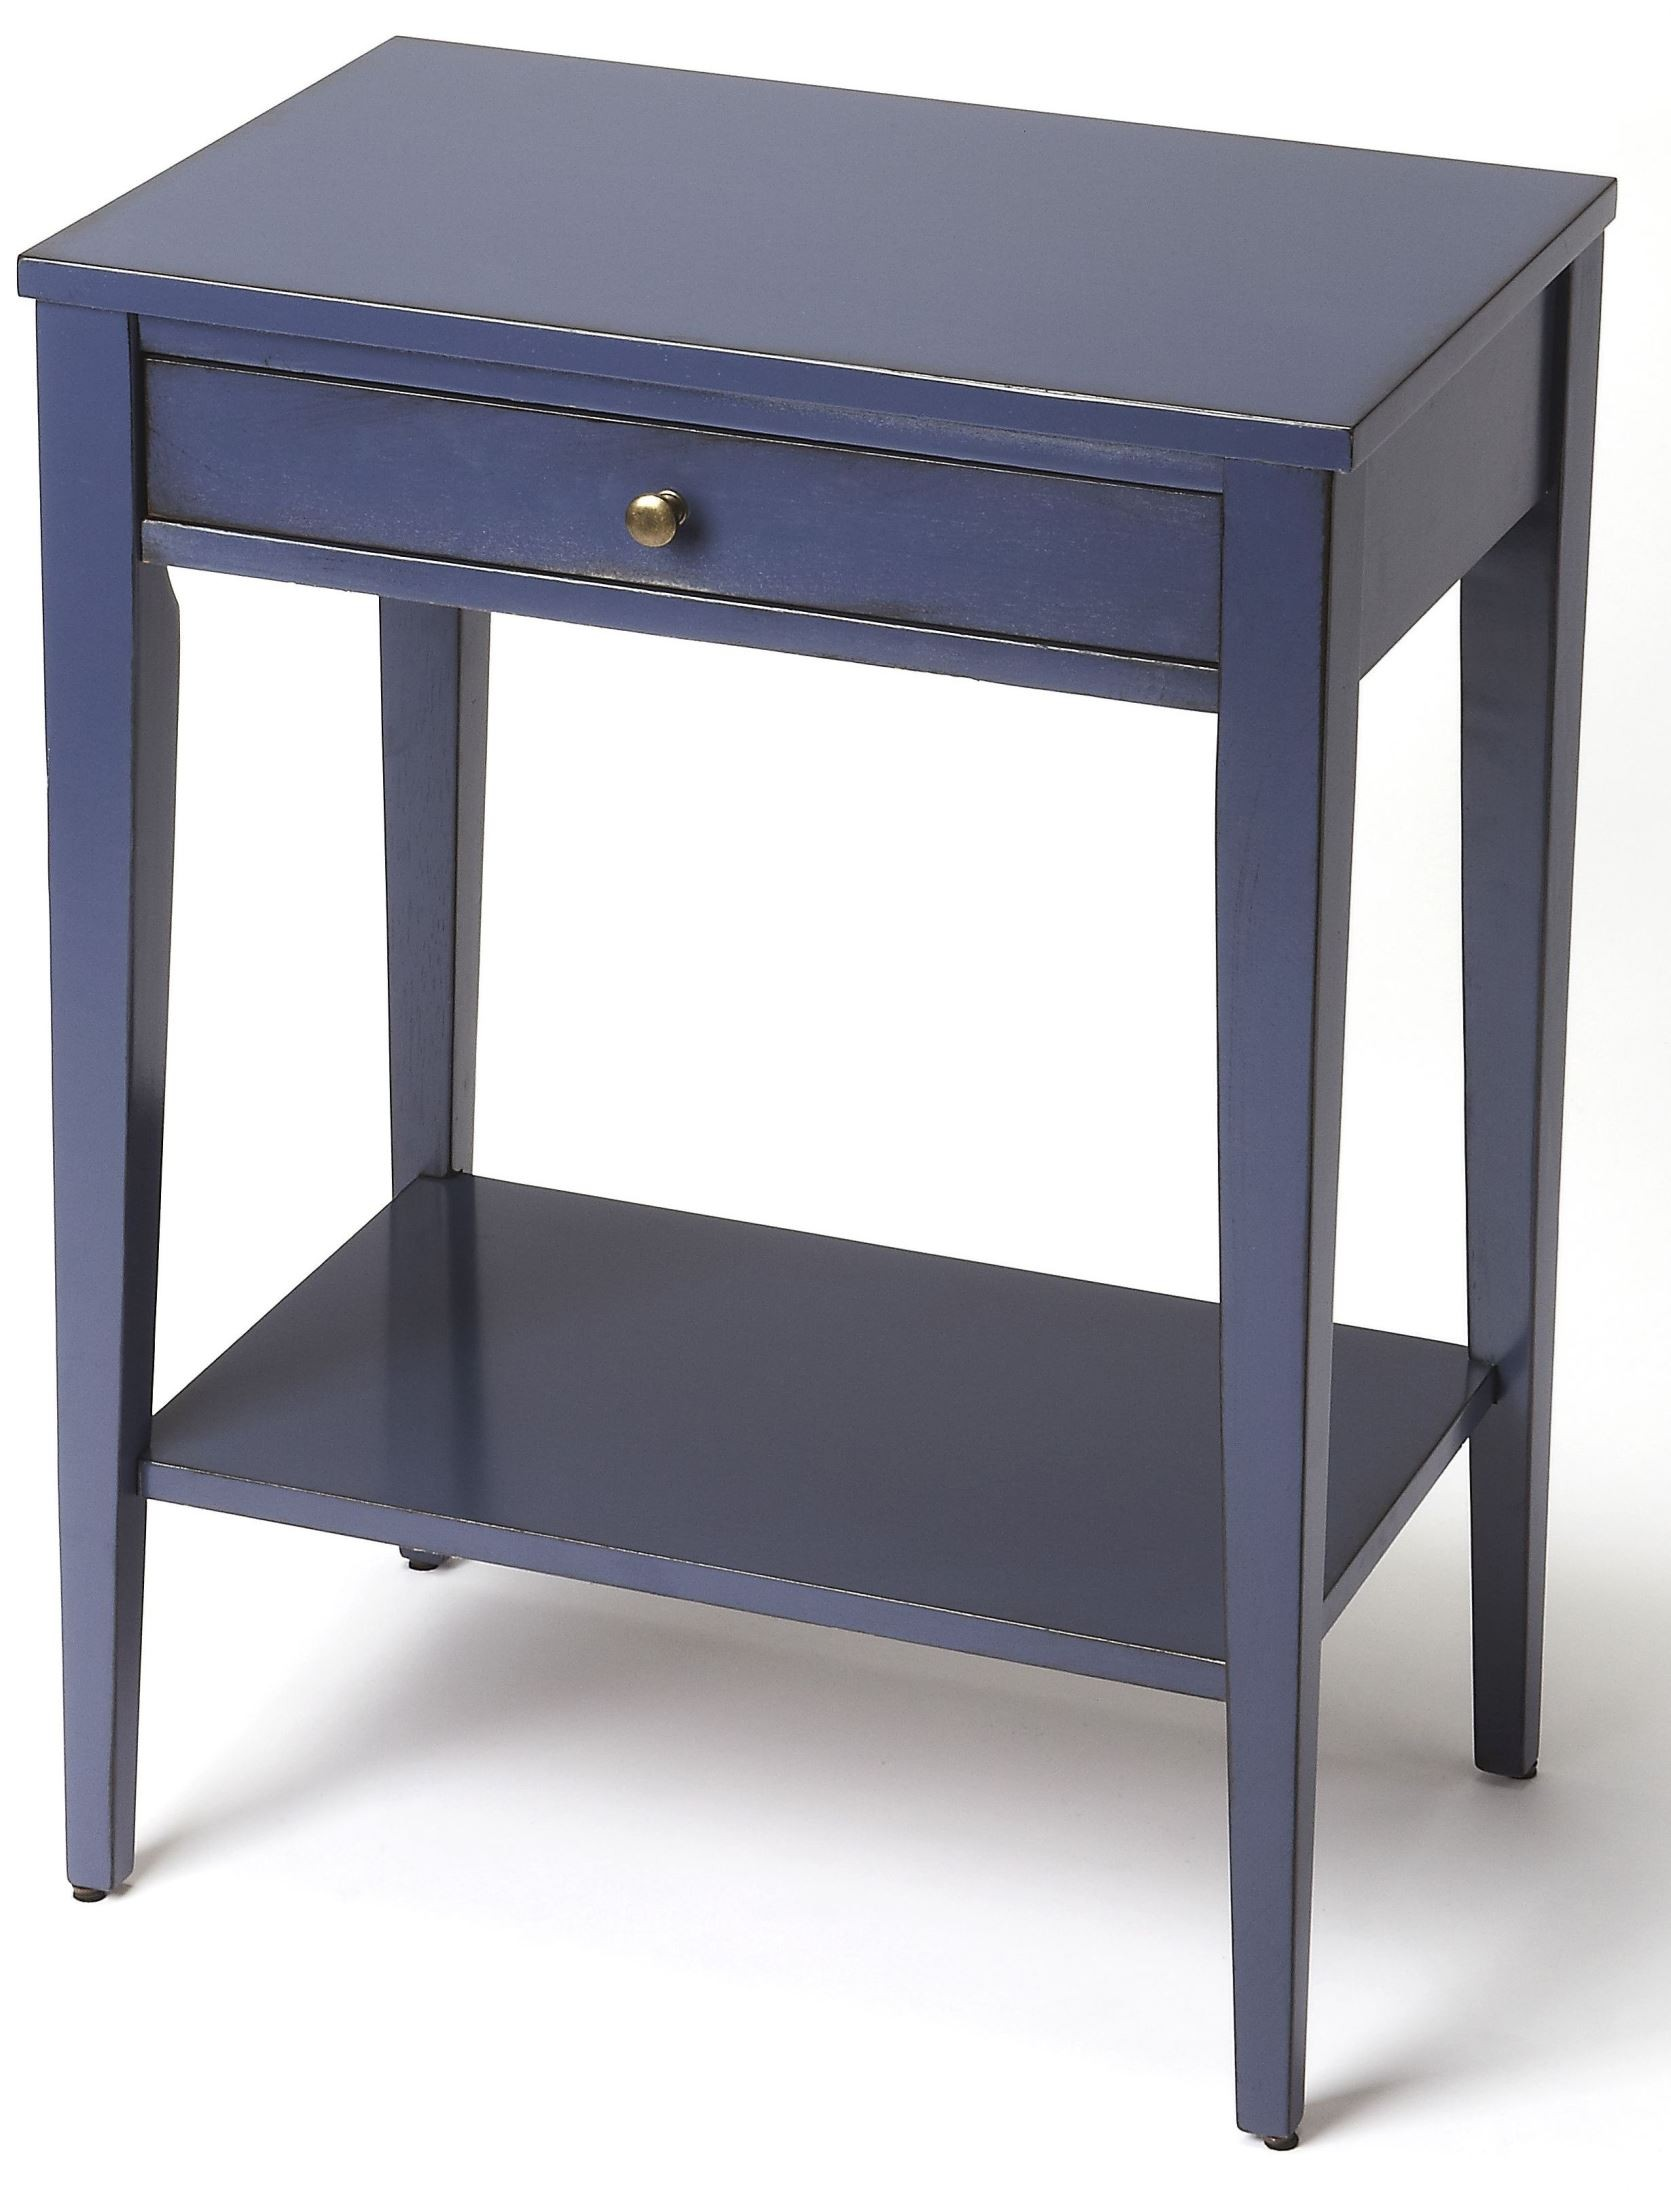 cobble hill navy blue console end table butler red accent white pedestal fine furniture edmonton bedroom porcelain lamp west elm industrial coffee tables for small spaces outdoor